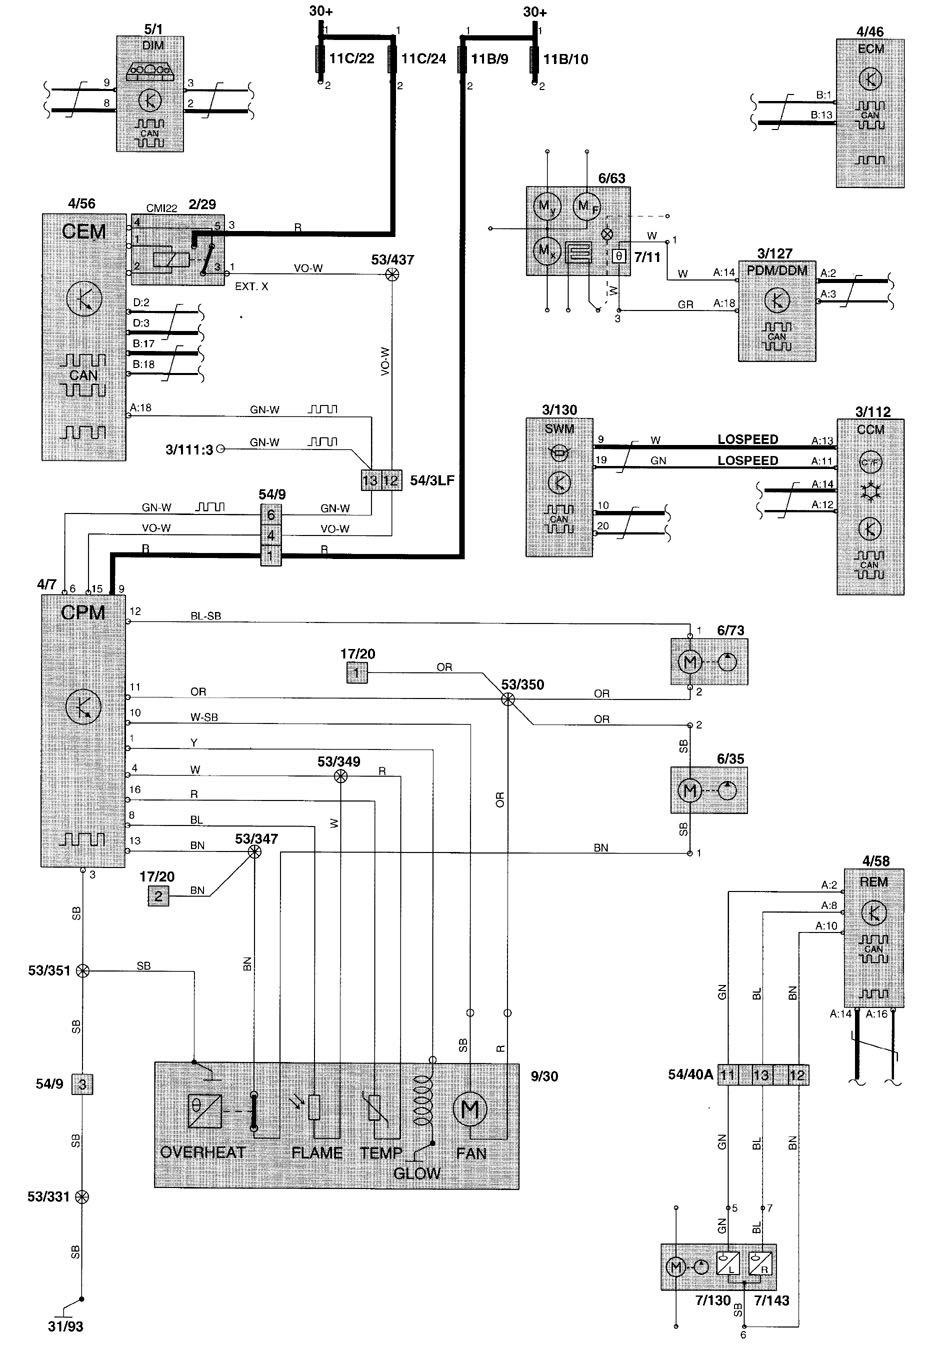 Volvo S70 Diagram Hvac Trusted Schematics 2001 V70 Fuel Pump T5 Wiring 2000 Diagrams Controls Carknowledge S60 Polestar